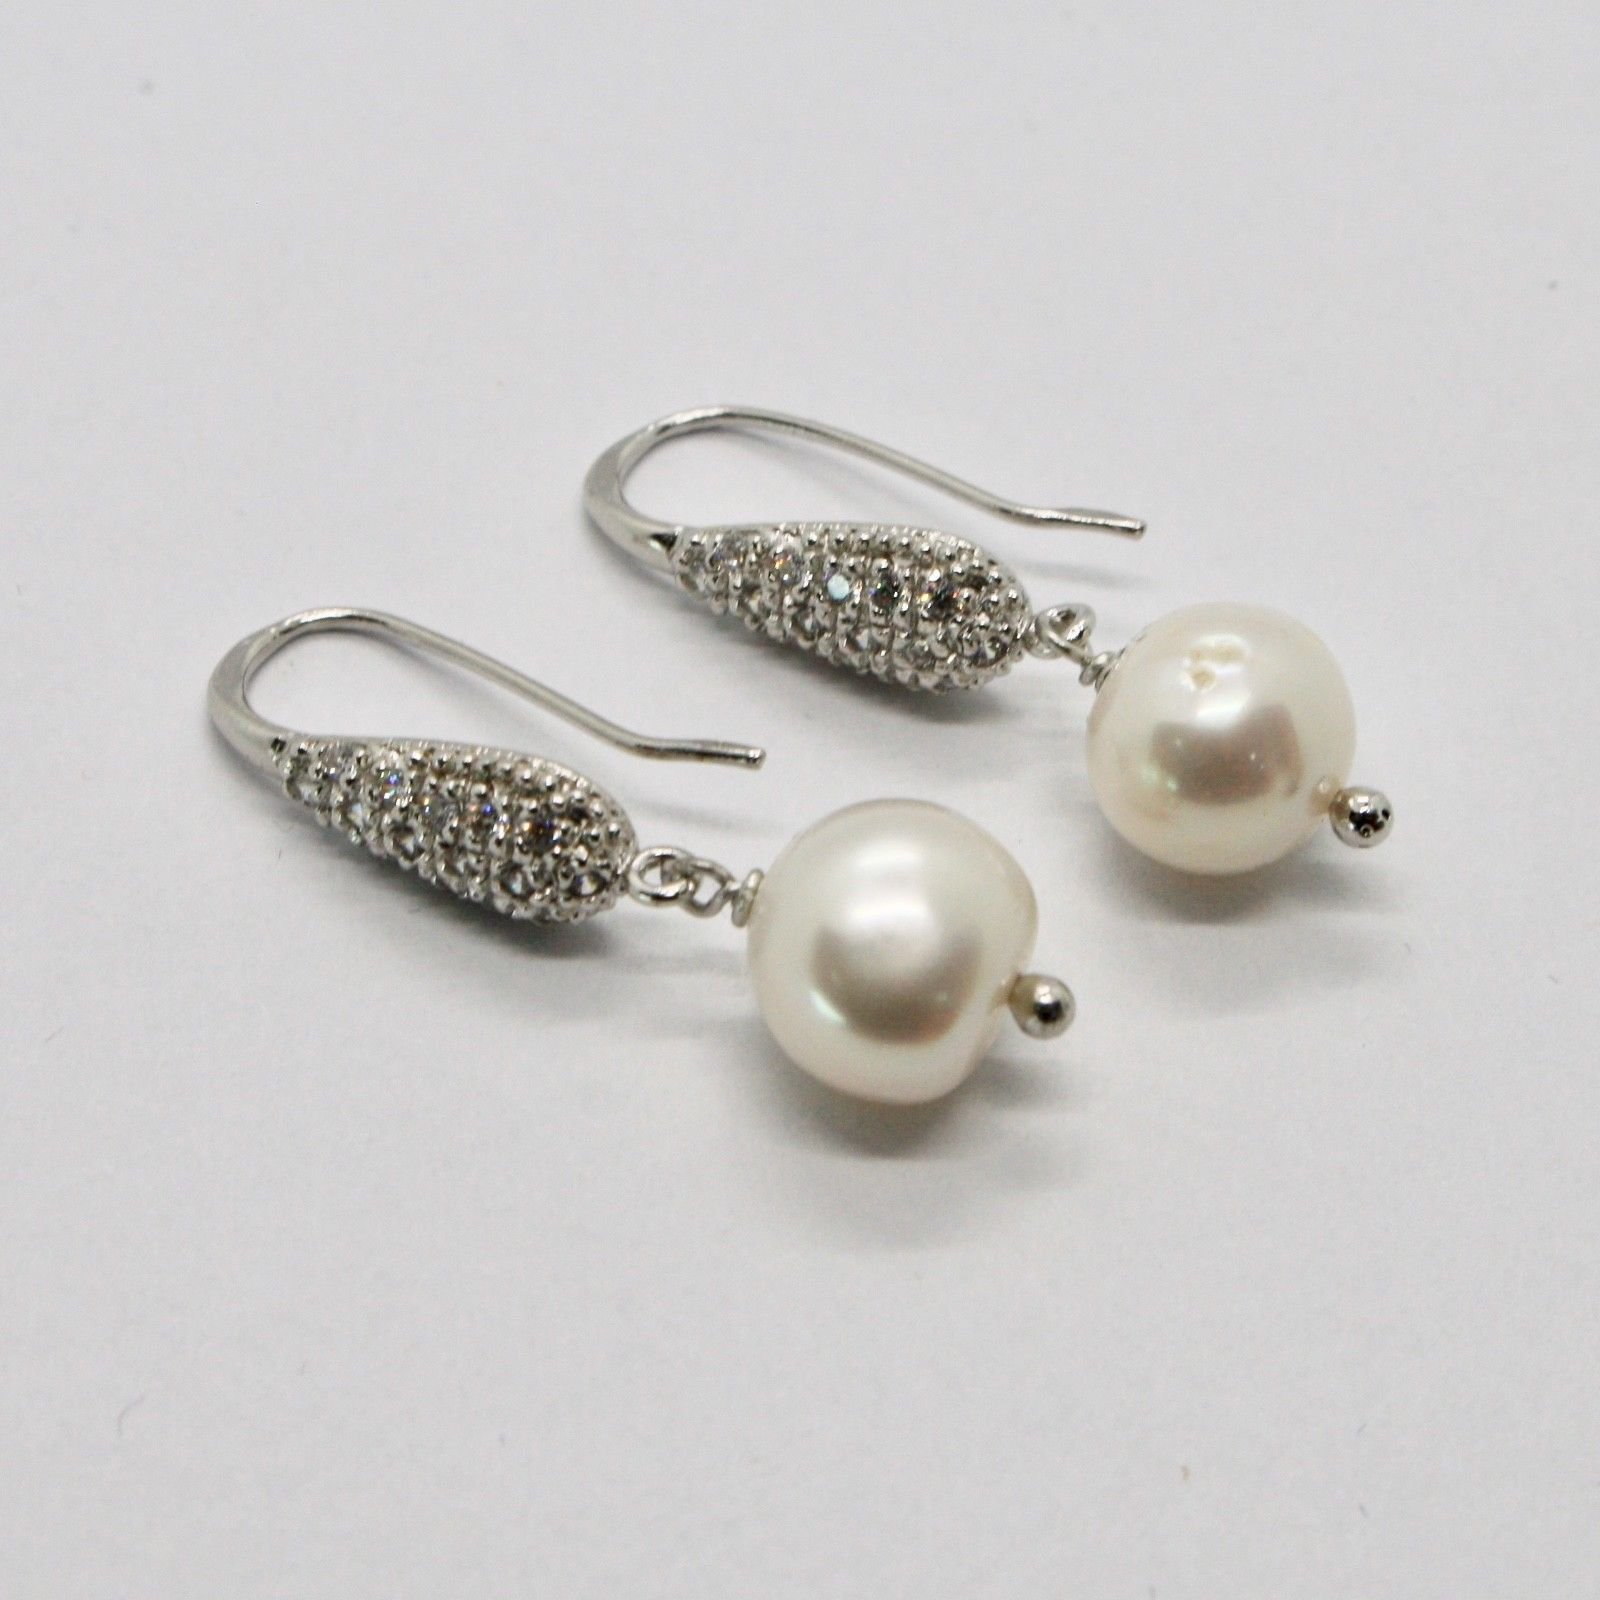 DROP EARRINGS 925 SILVER PEARLS SERENITY BY MARY JANE IELPO MADE IN ITALY